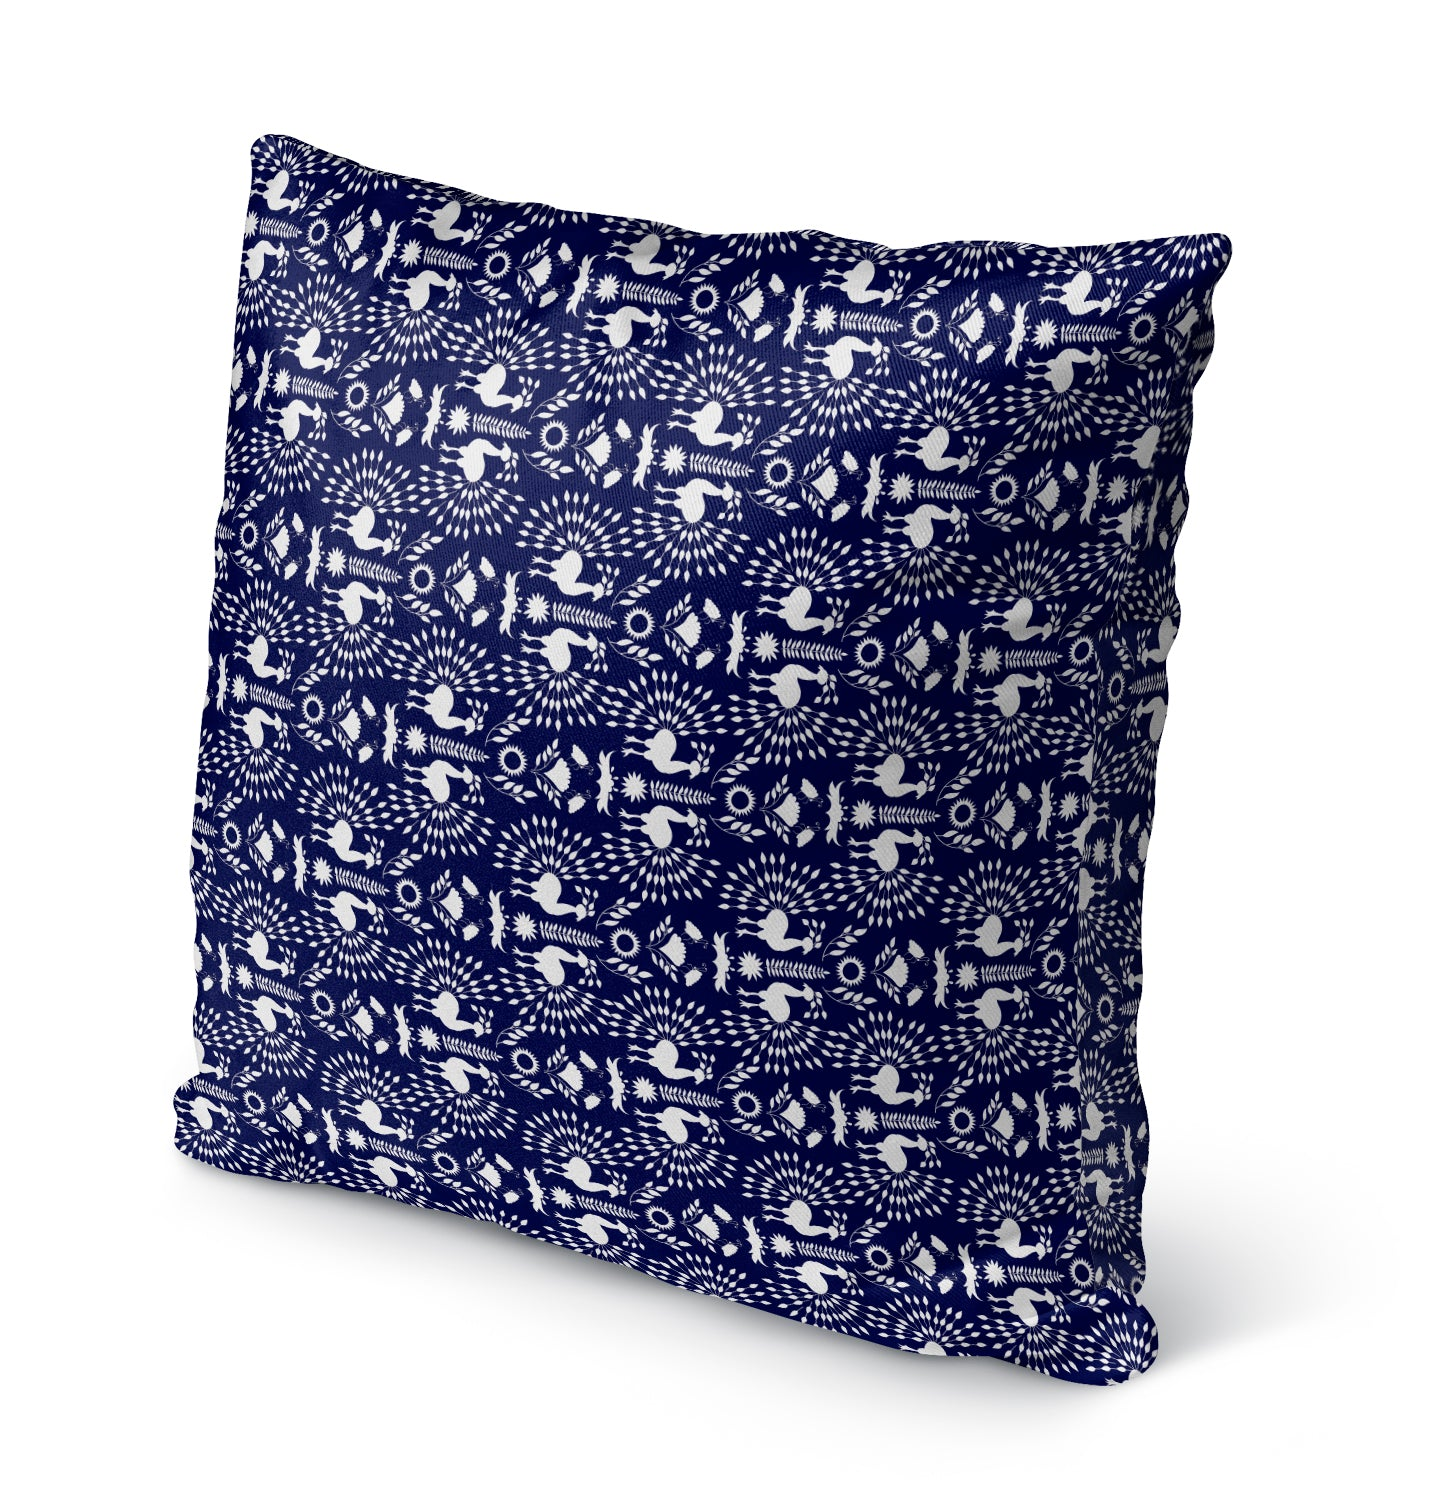 MESH Indoor|Outdoor Pillow By Terri Ellis